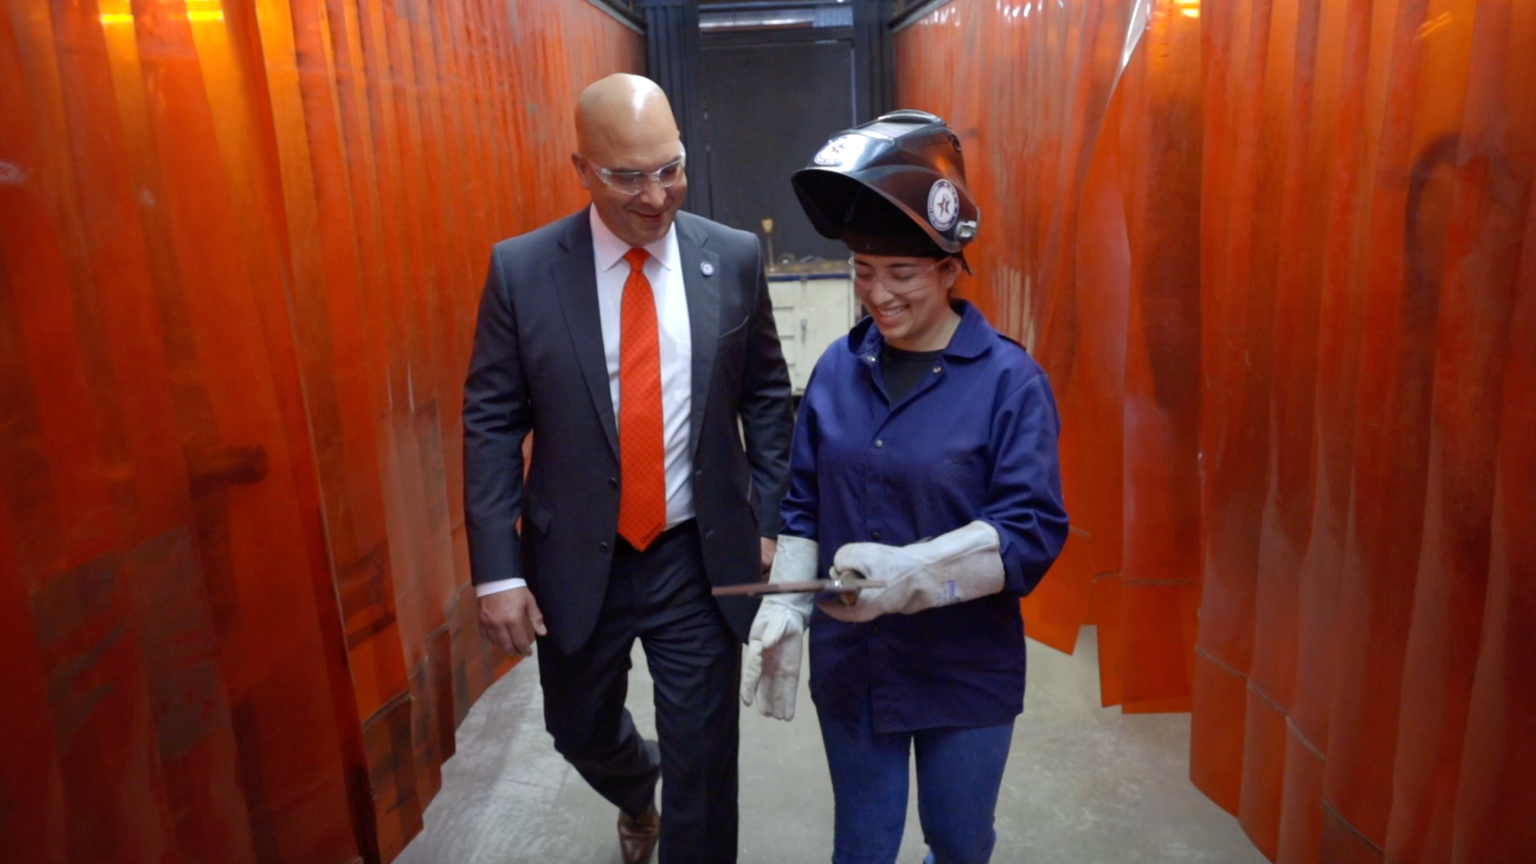 Workshops for Warriors Founder and CEO Hernán Luis y Prado with Welding Student